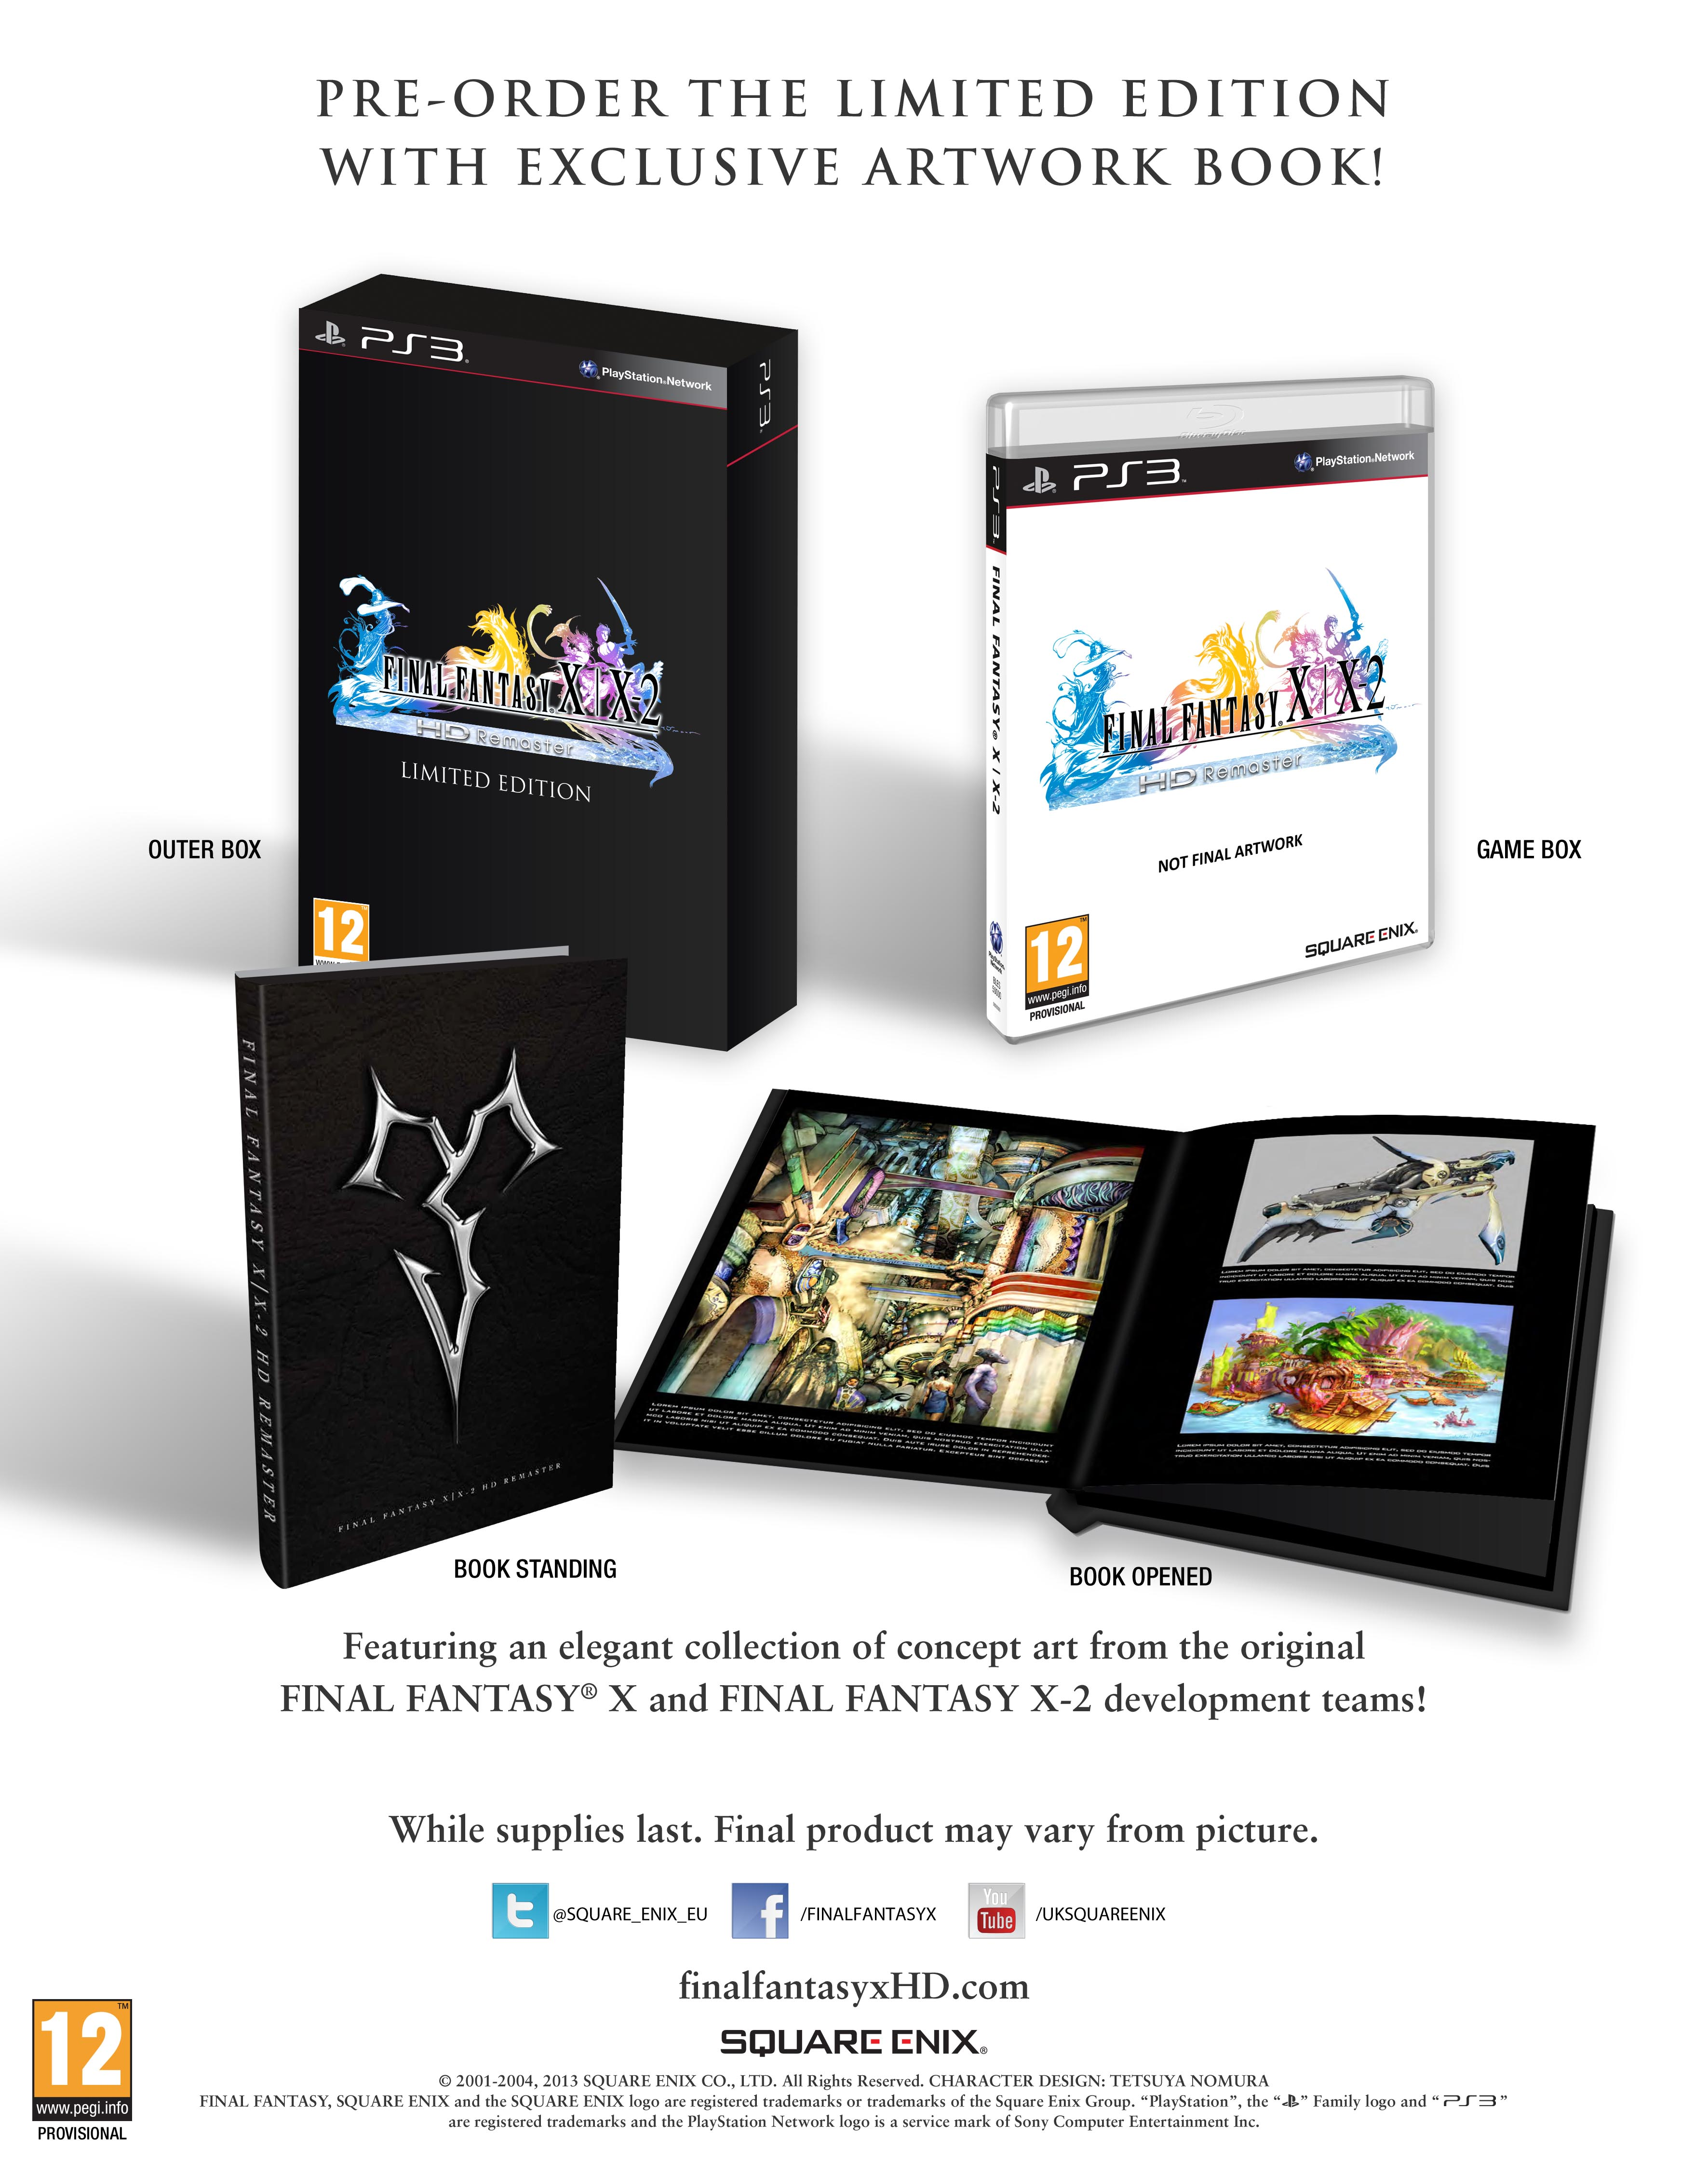 Collectorsedition. Org » final fantasy x/x-2 hd remaster.